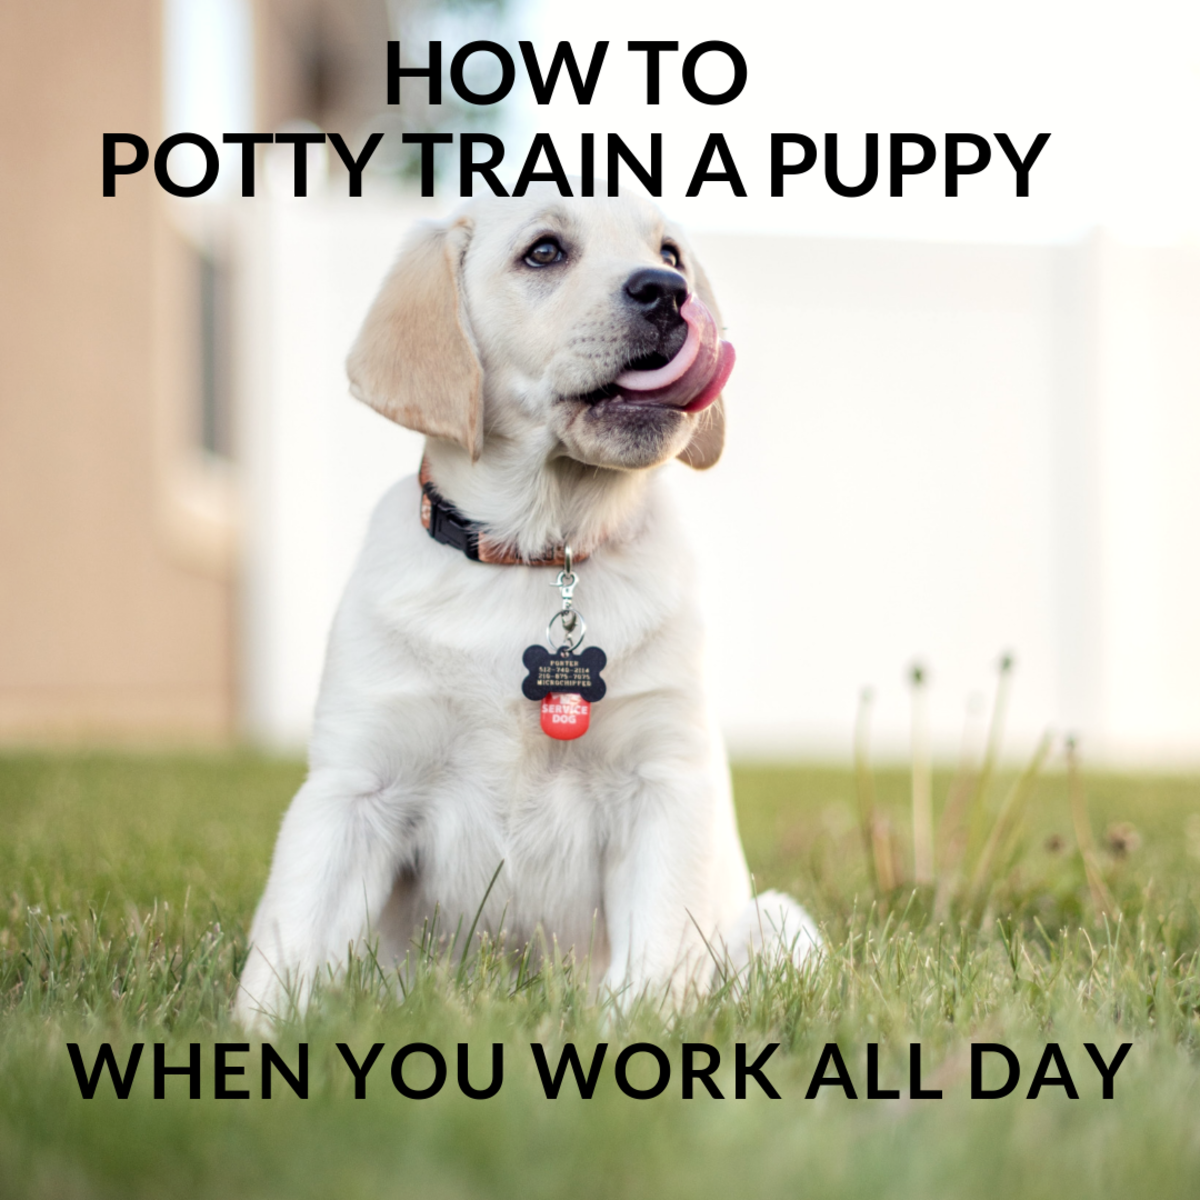 Potty training can be a challenge if you work all day.